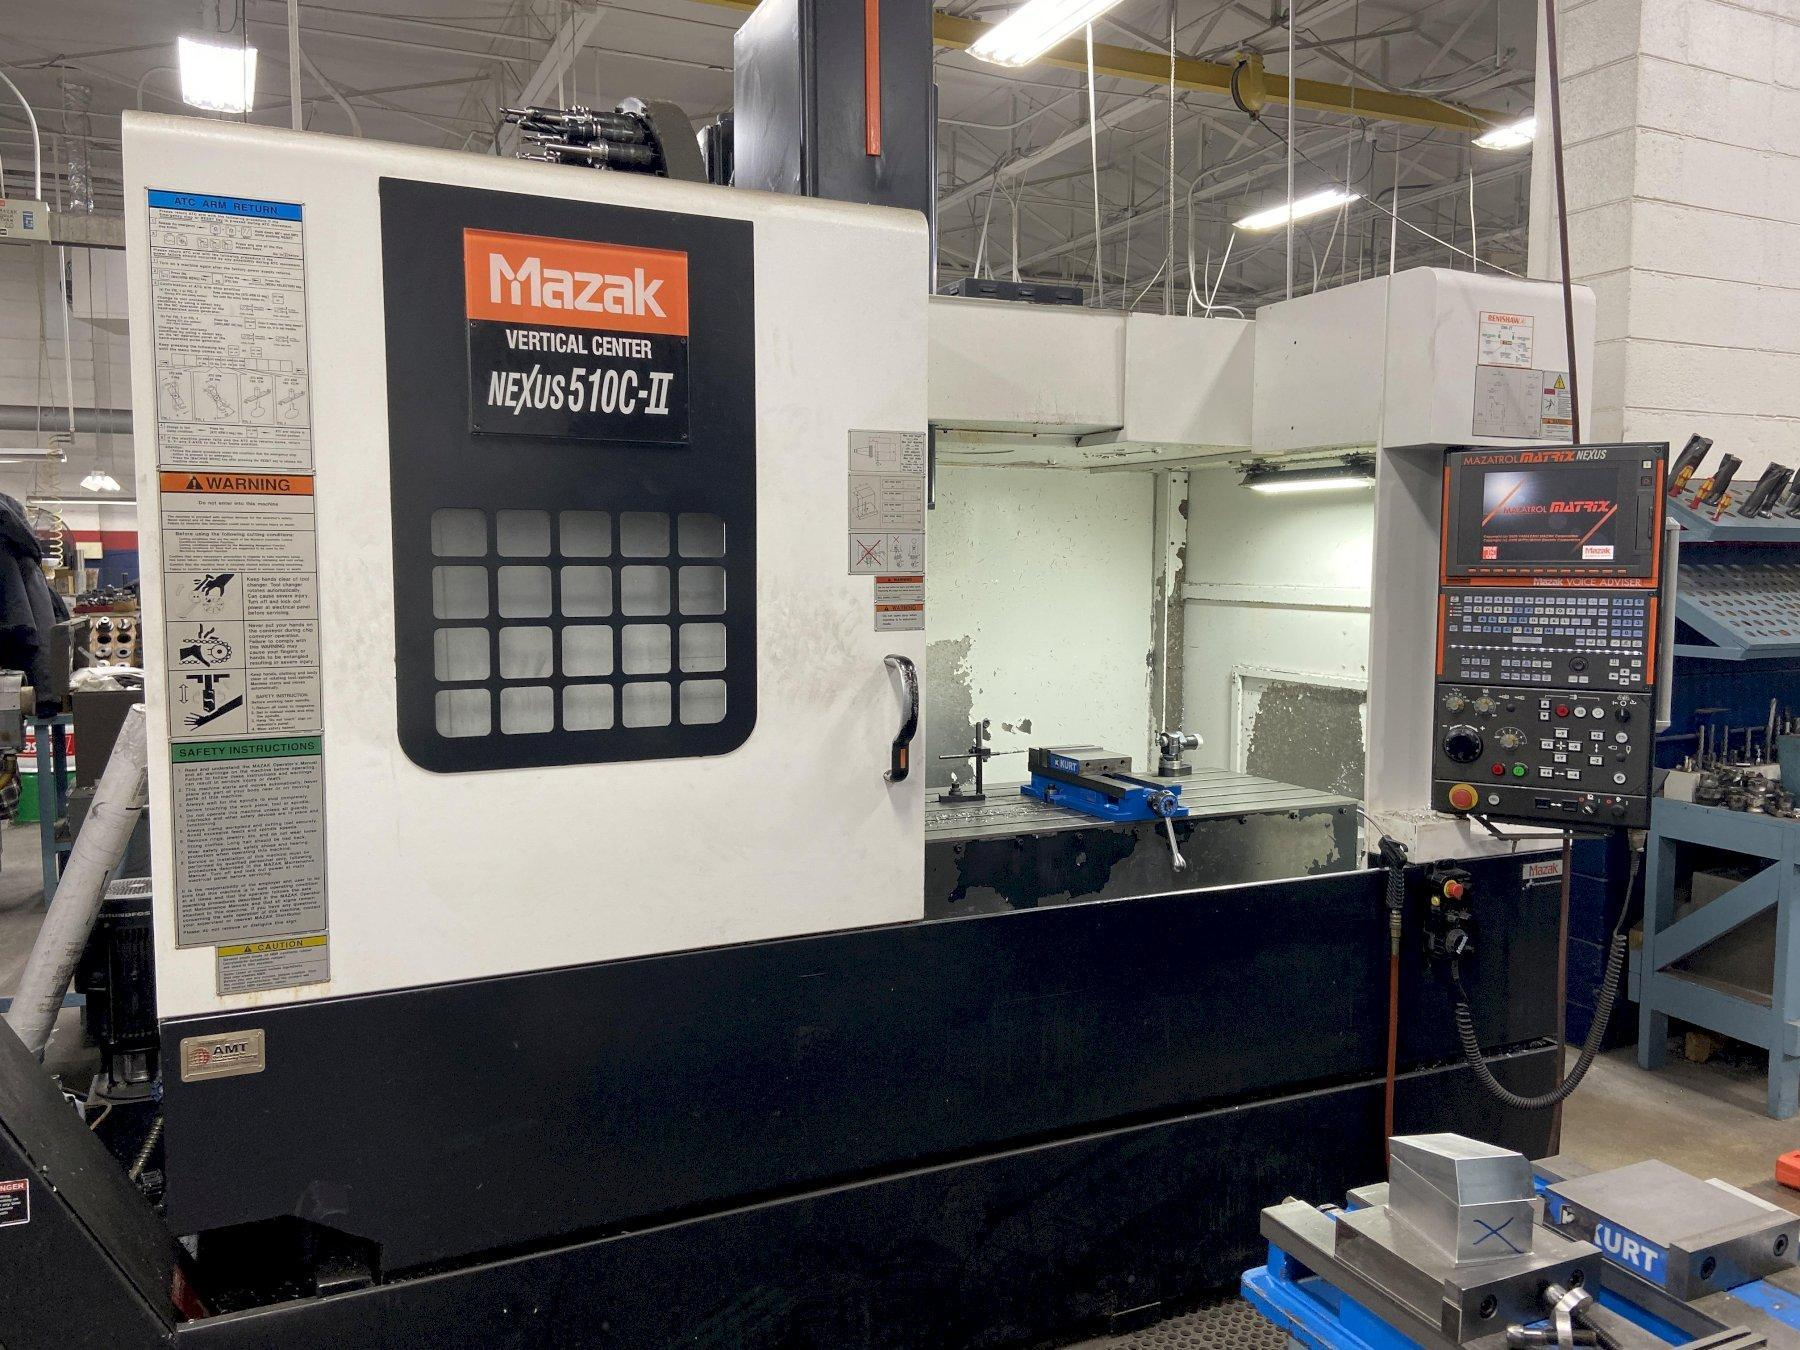 Mazak VCN510C-II CNC Vertical Machining Center, Nexus, 12K Spindle, 41